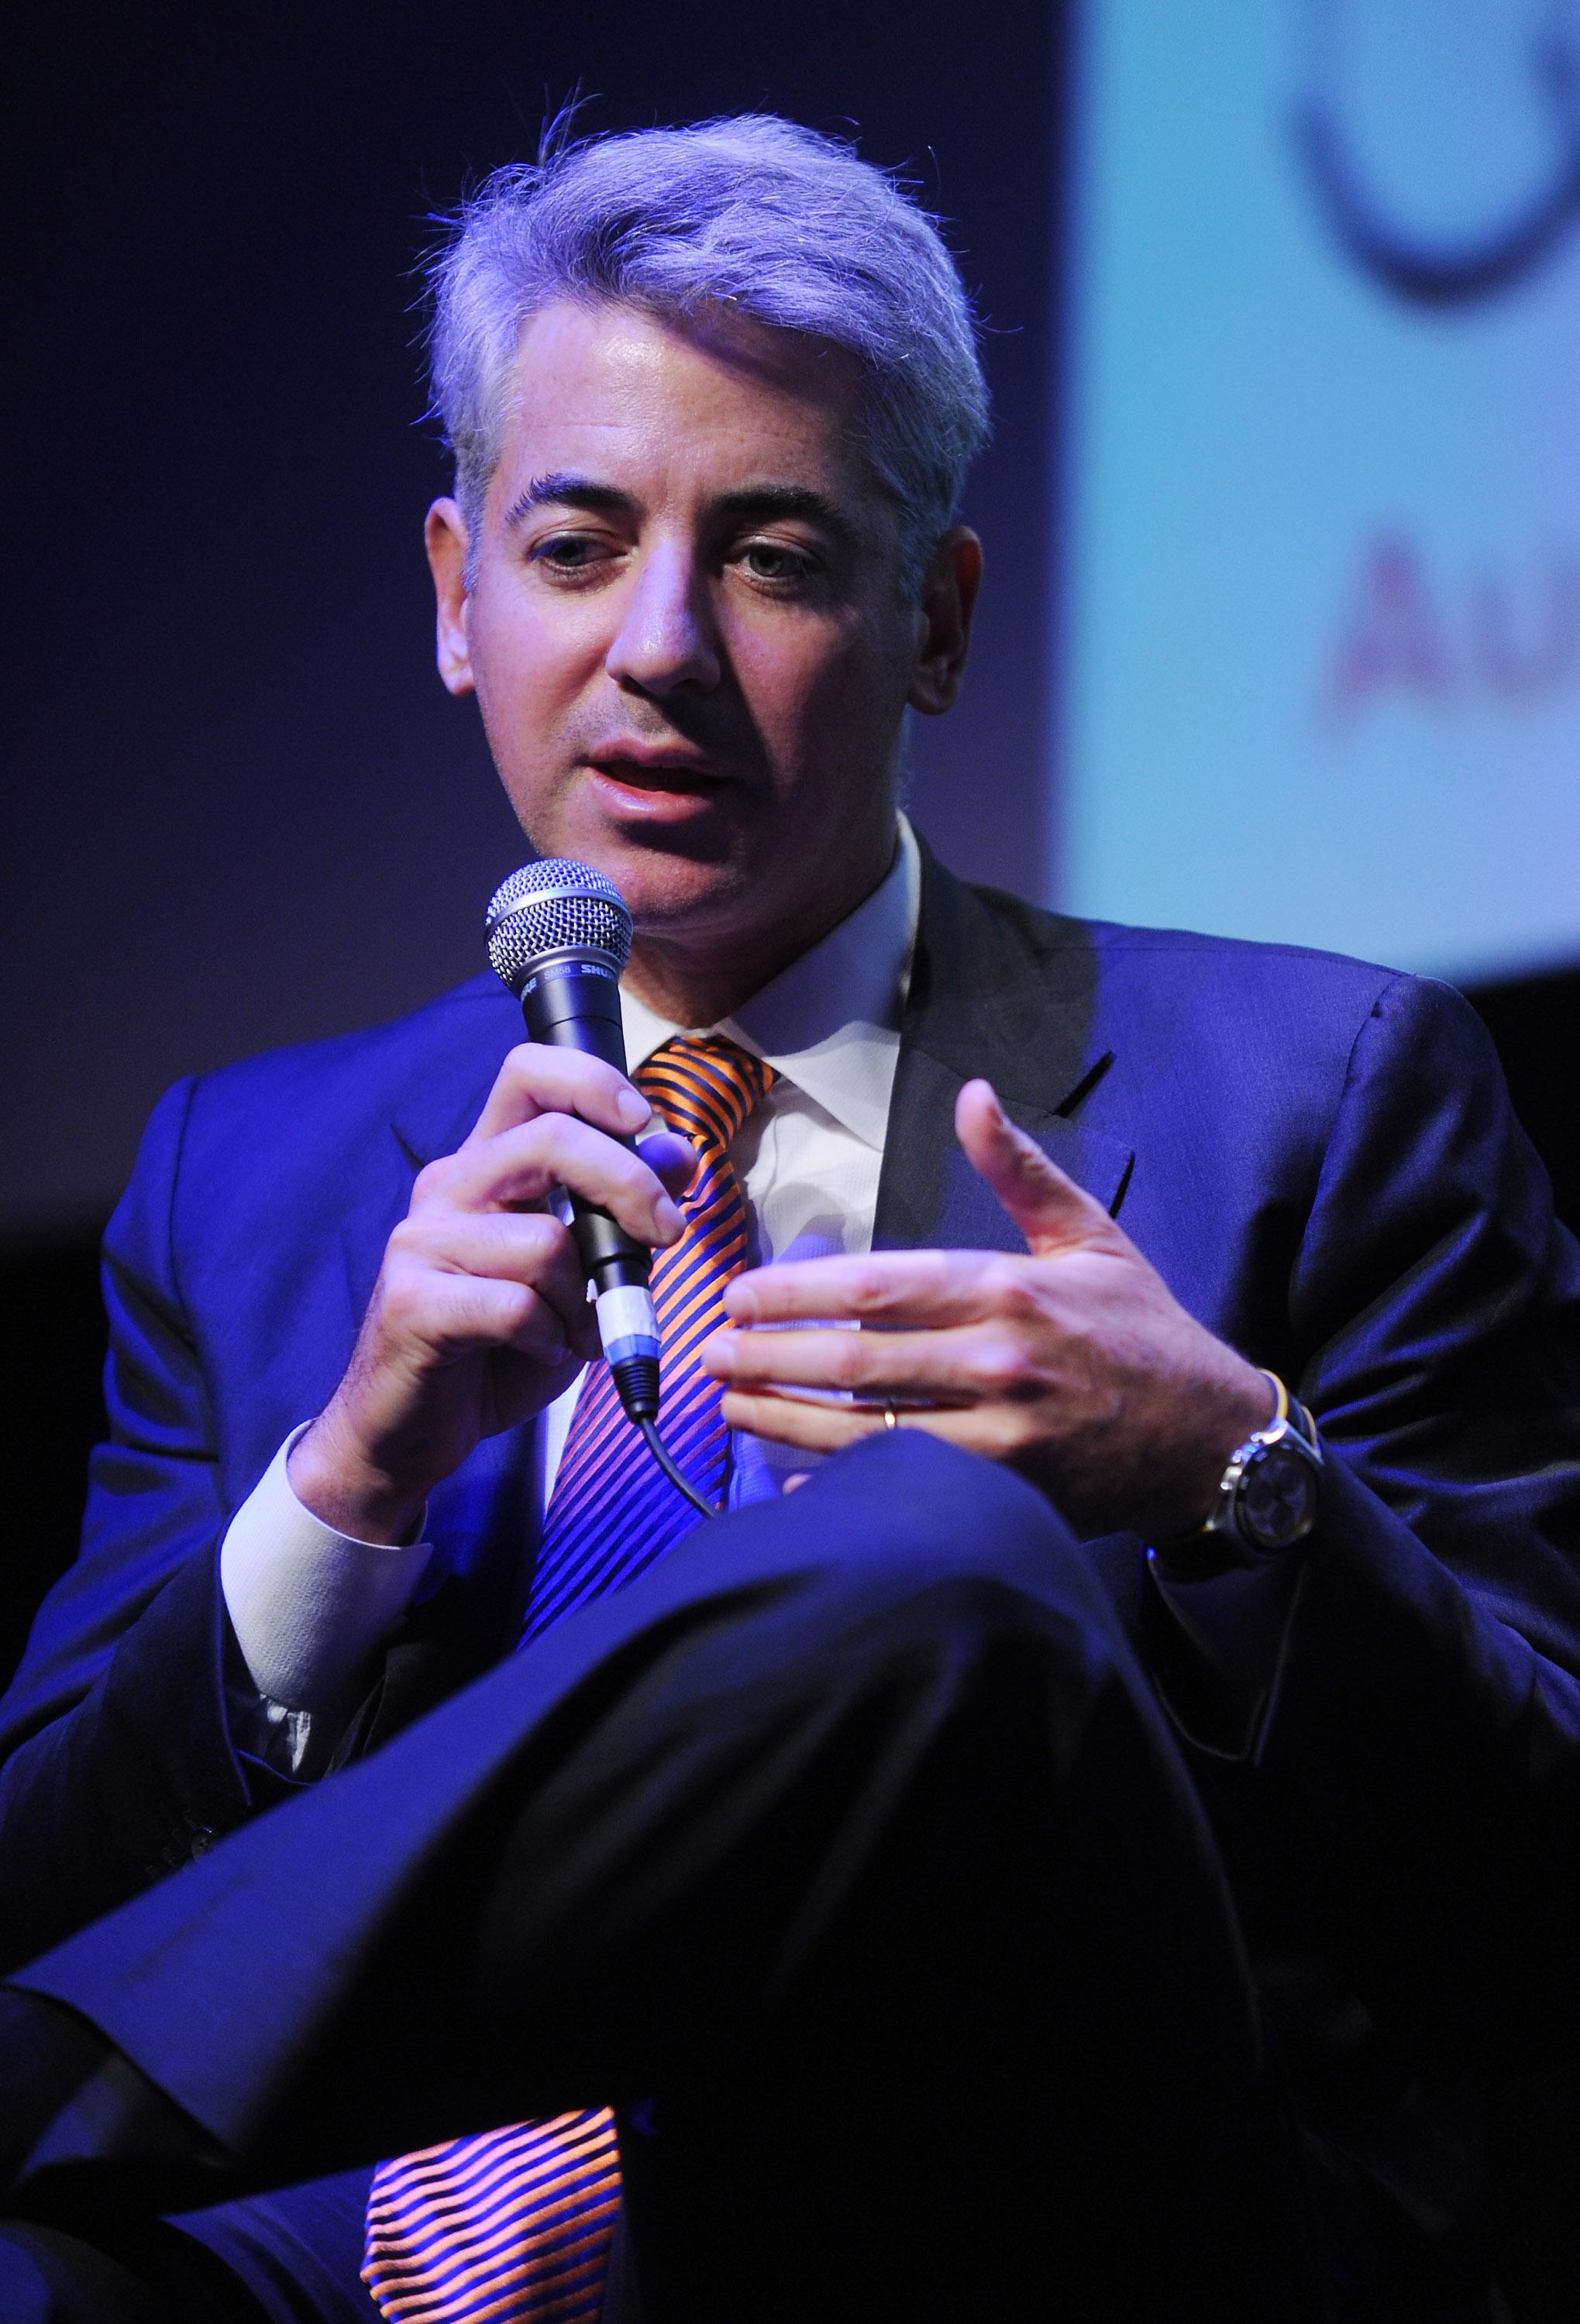 Pershing Square Capital Management CEO Bill Ackman speaks at the New York Film Festival.